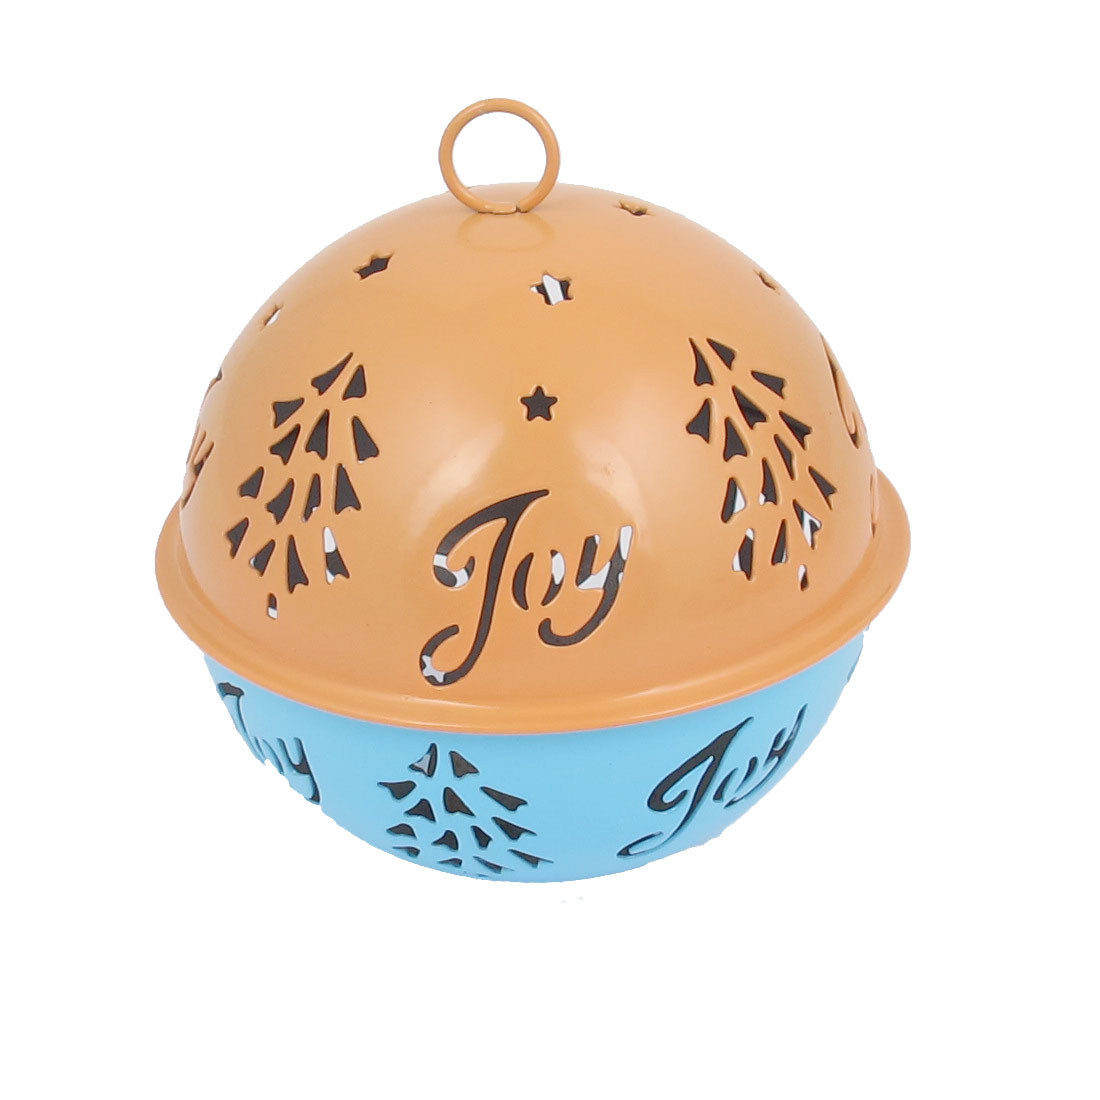 85mm Diameter Blue Orange Metal Christmas Tree Detail Ball Shape Hollow Out Design Jingle Ring Bell Ornament for Celebration Party Case